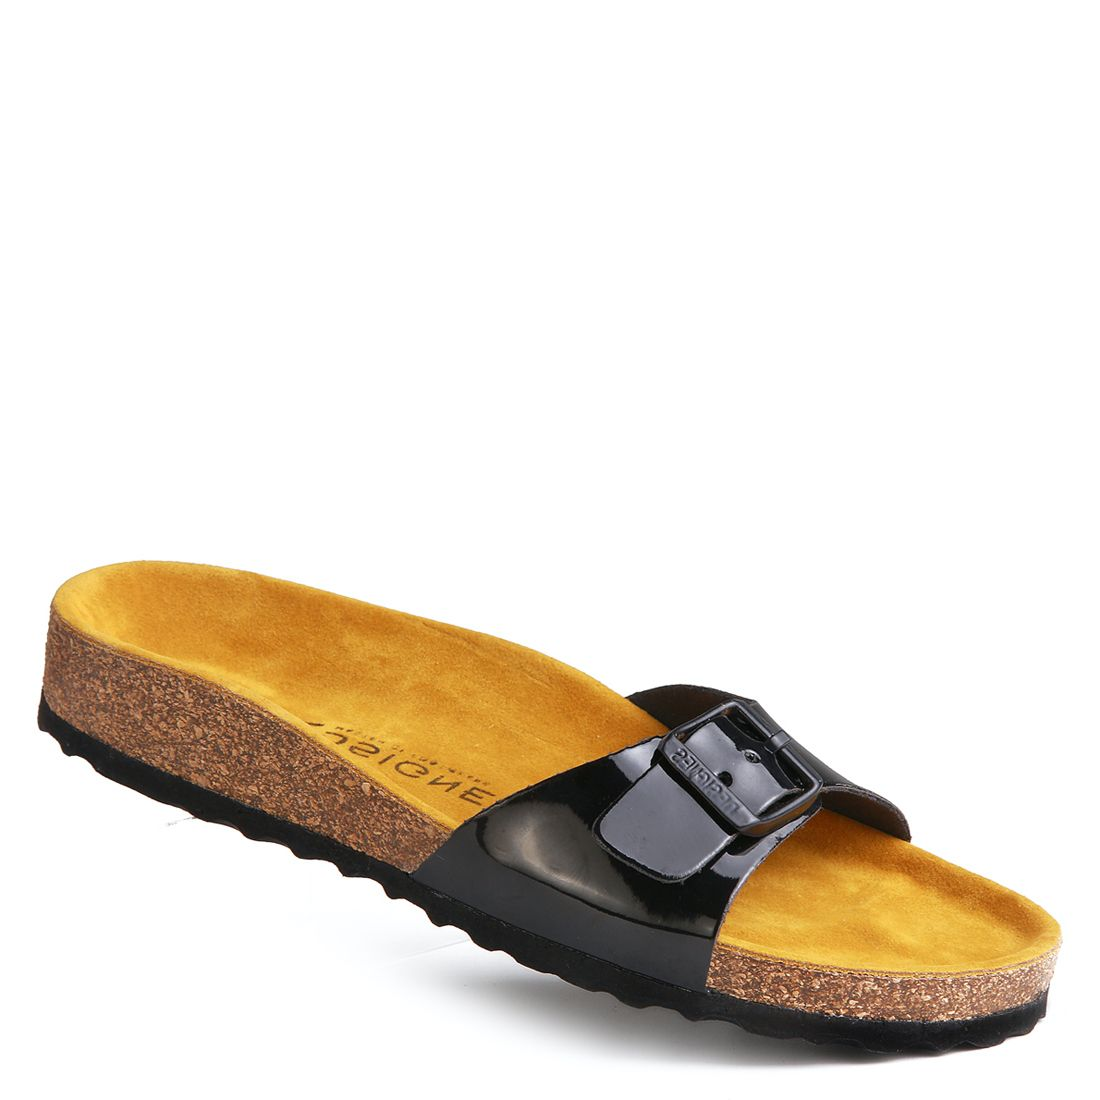 DSIGNES CASUAL CHAPPALS FOR WOMEN-CLOVER